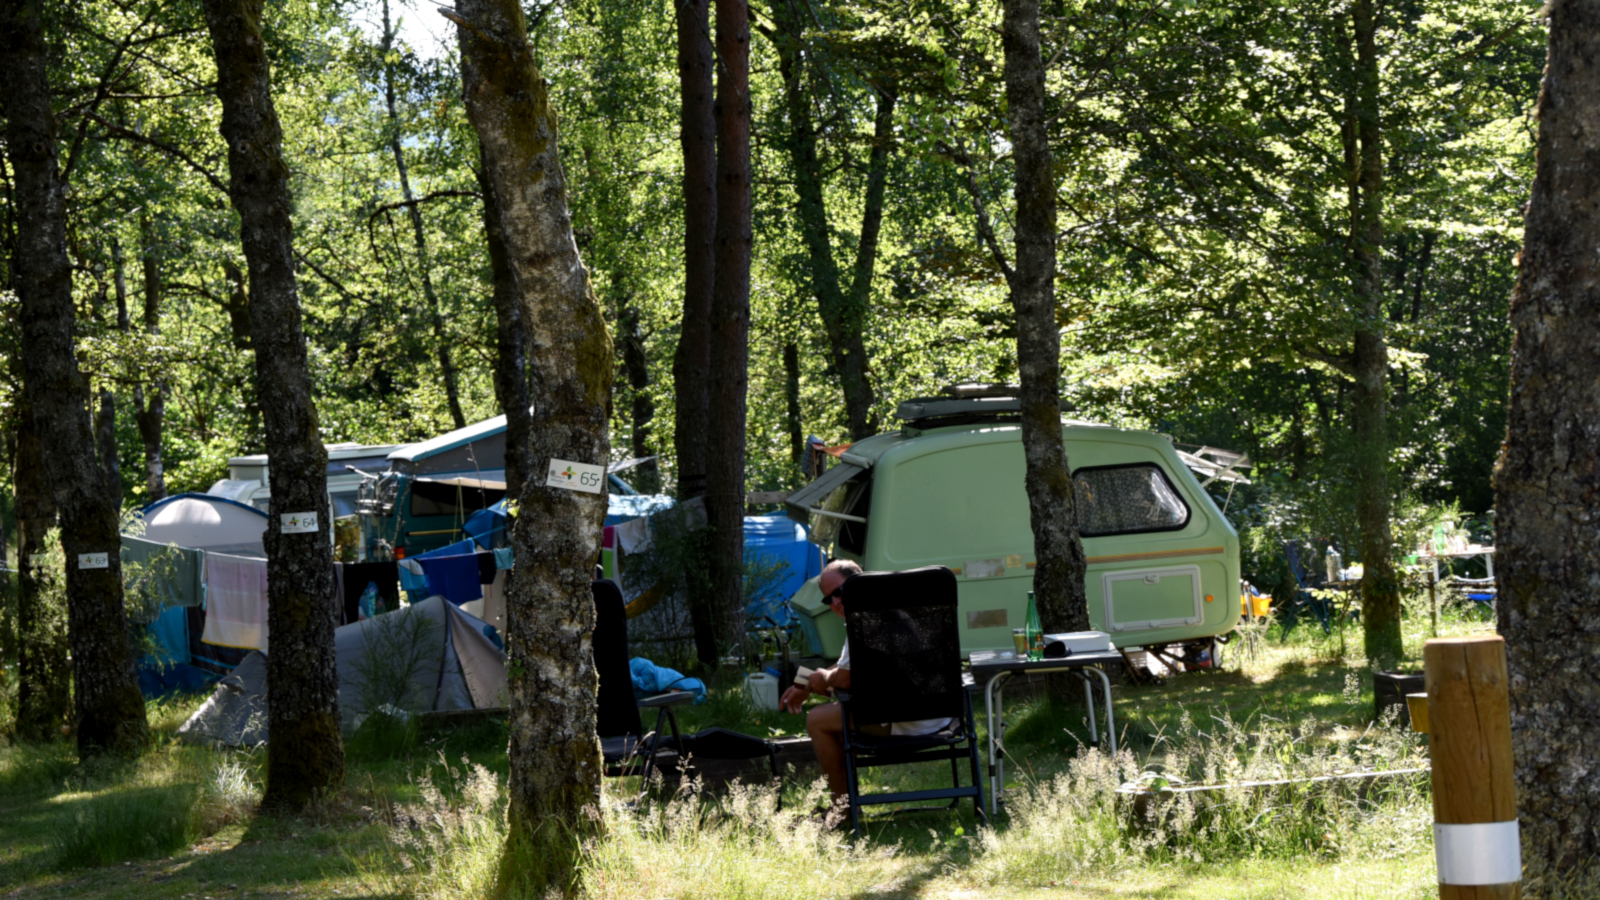 Le camping du Mettey comprend 80 emplacements disponibles du 1er avril au 30 septembre.